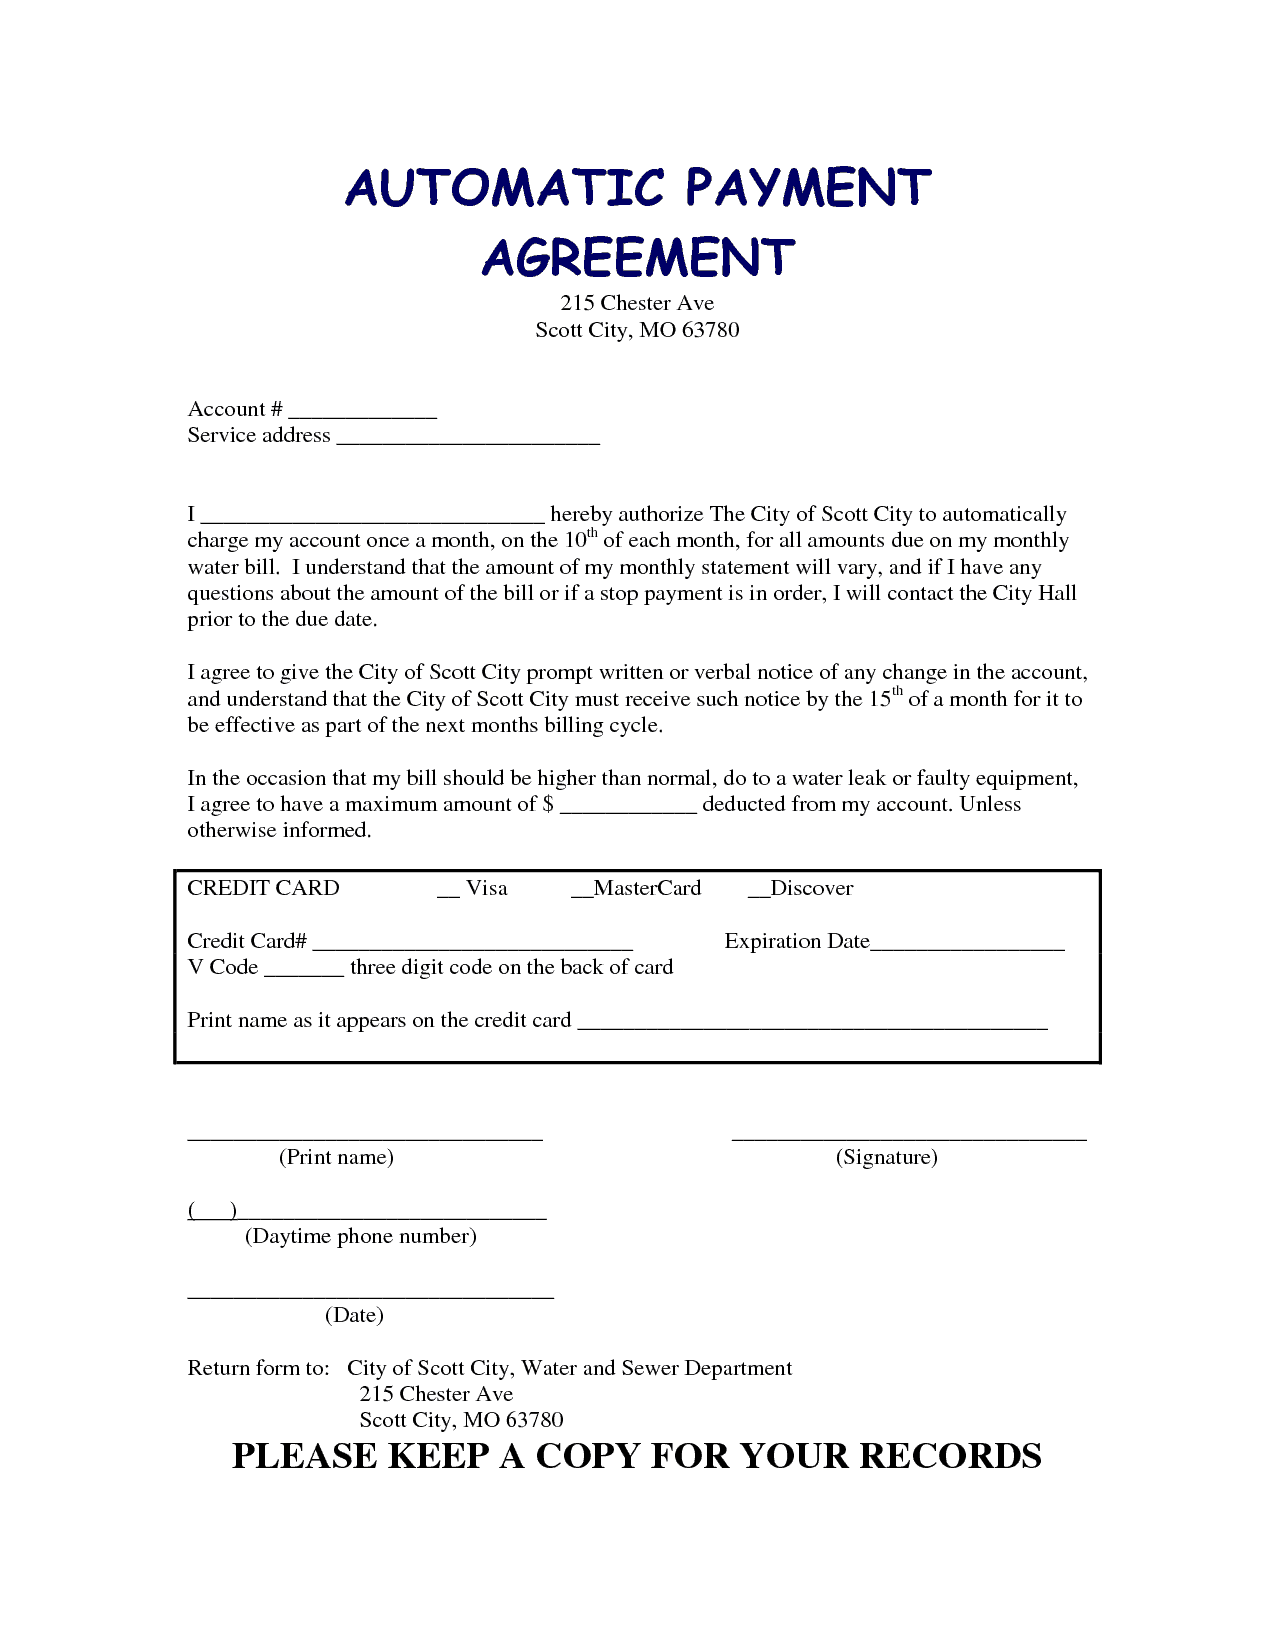 5 payment agreement templates - word - excel